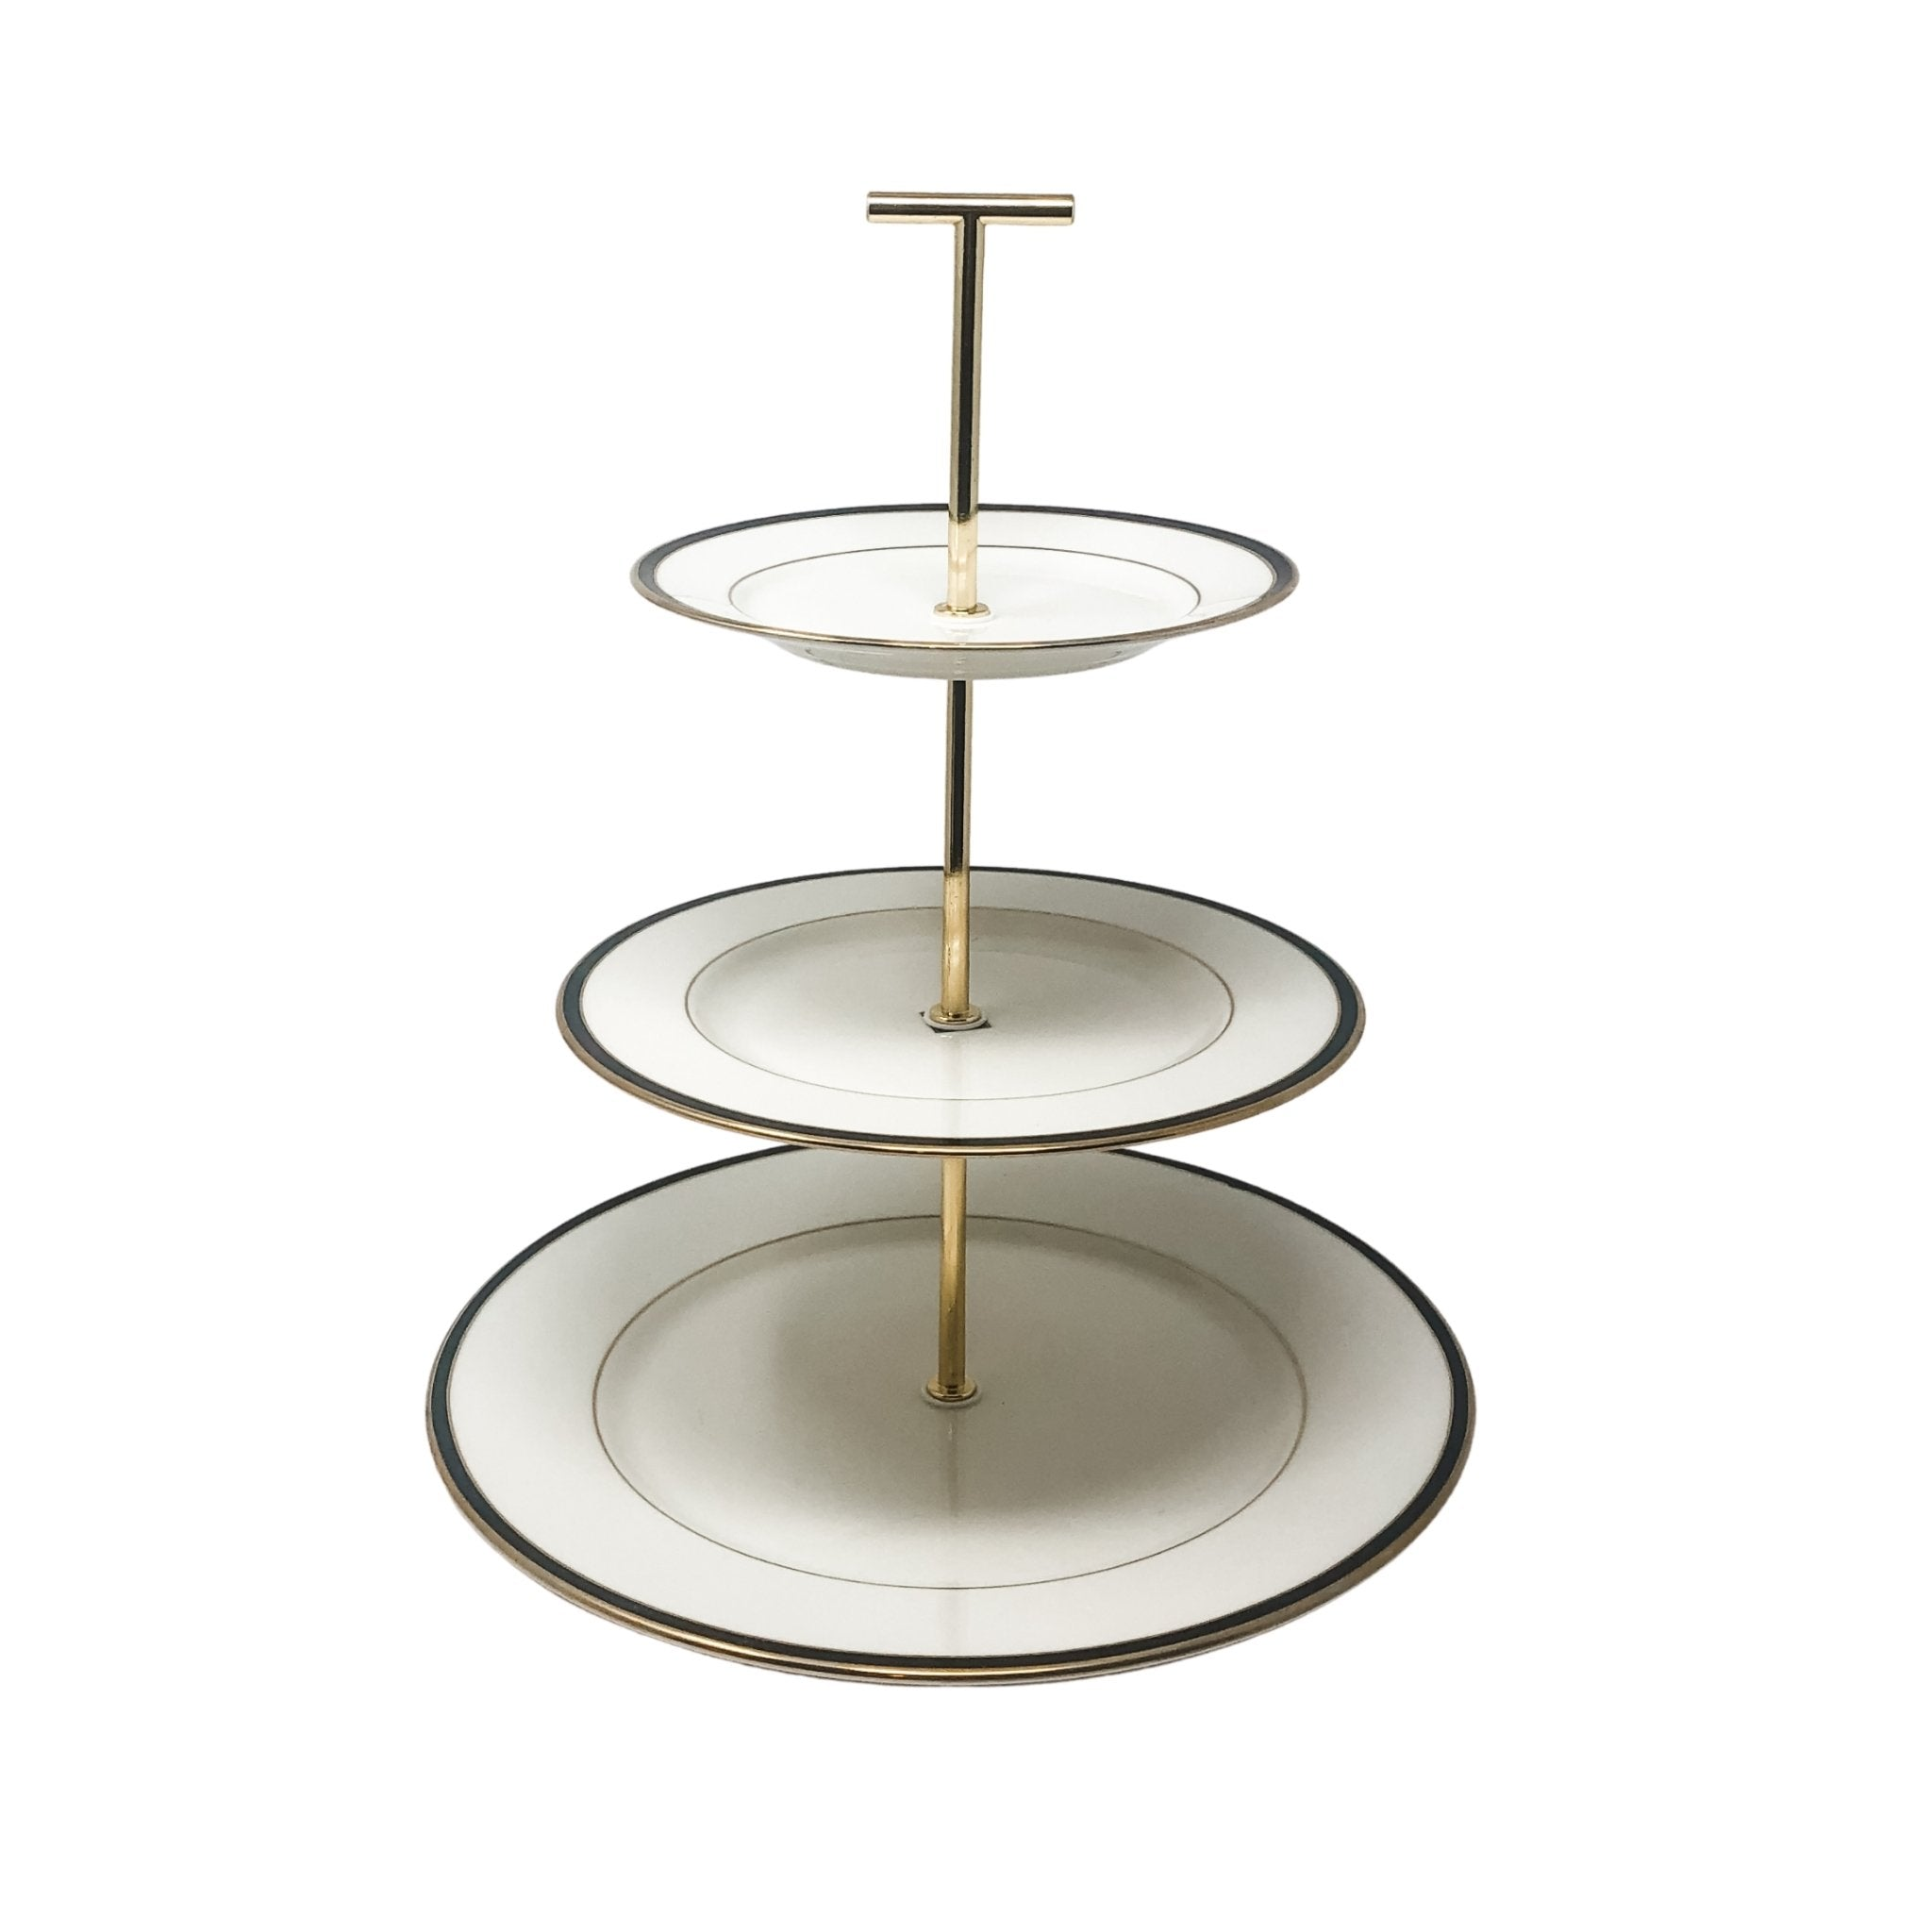 Lenox Urban Lights | 3-Tier | Lenox - The Brooklyn Teacup